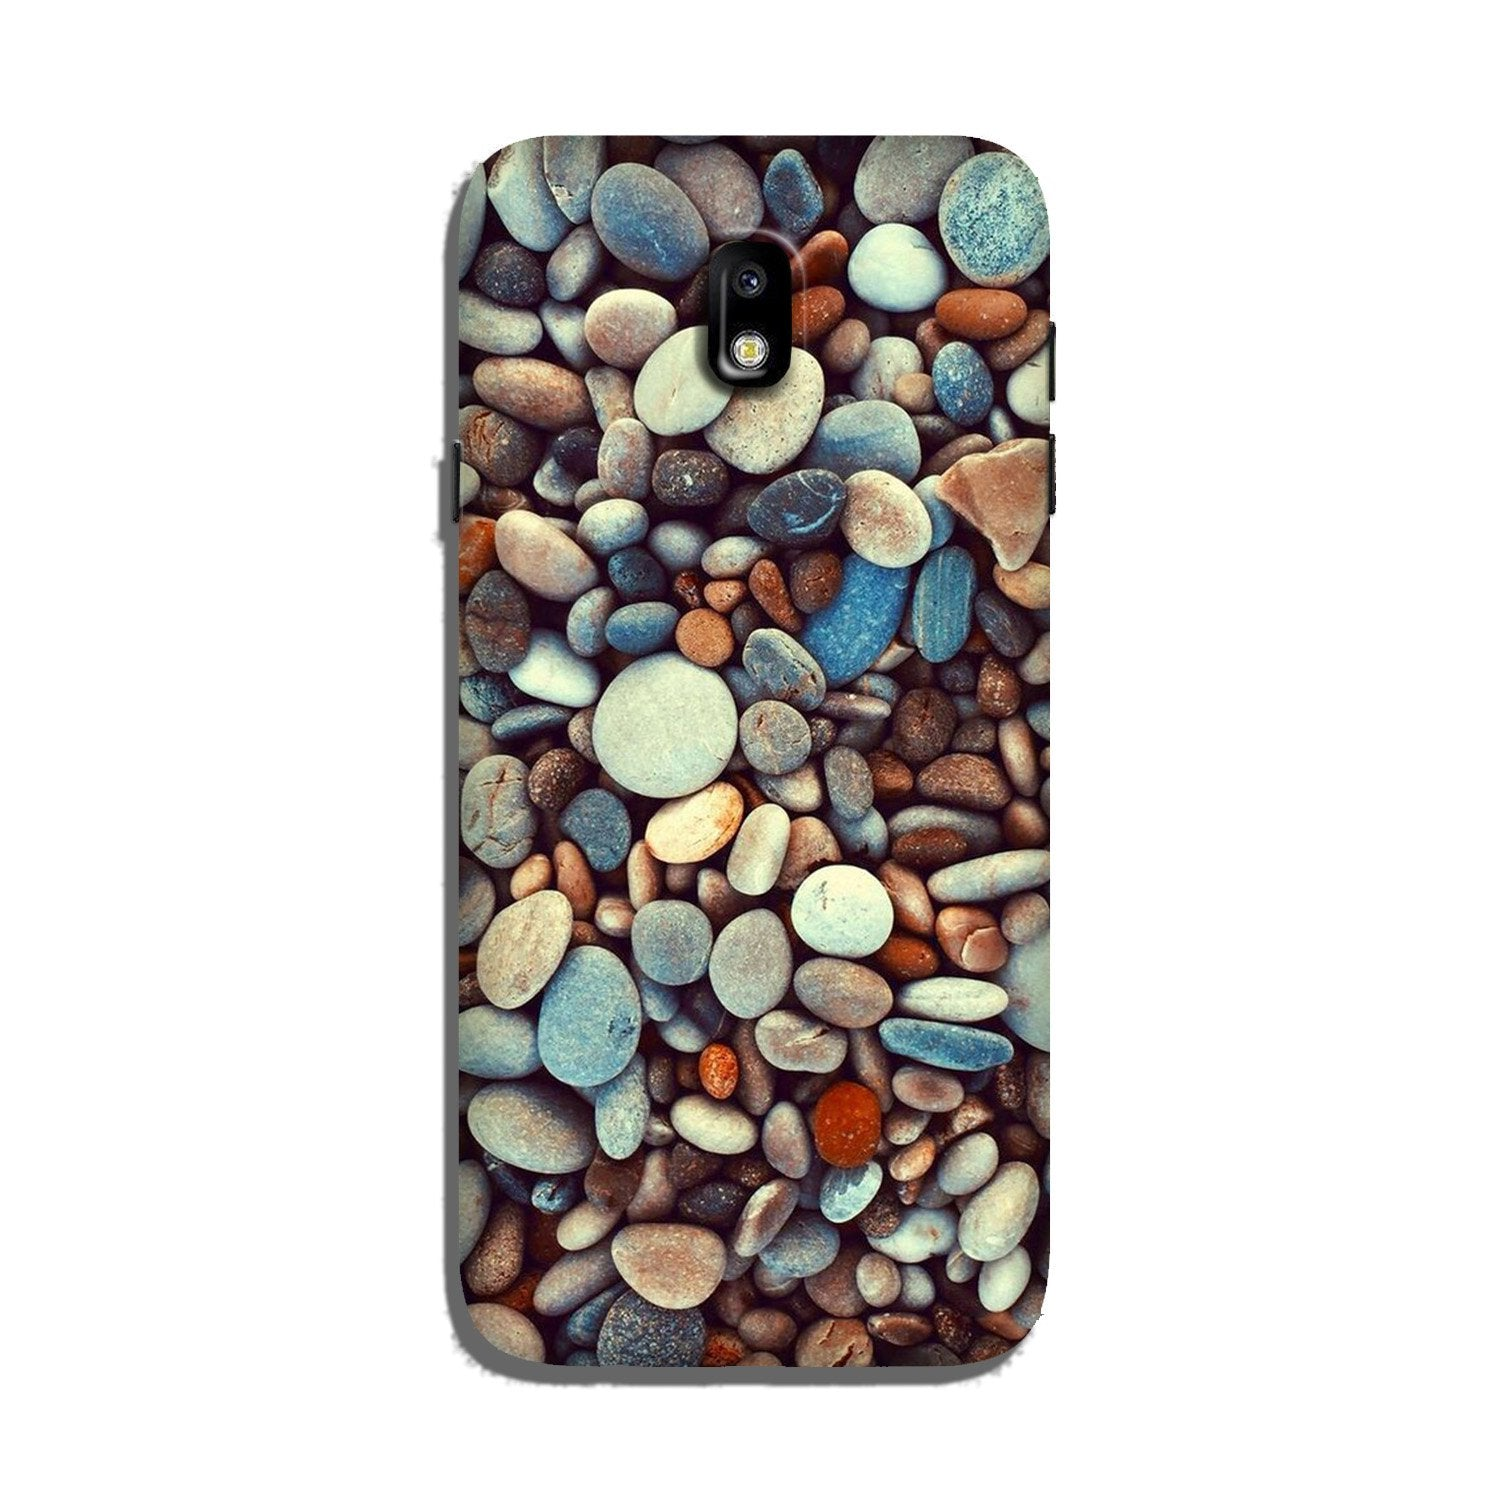 Pebbles Case for Galaxy J7 Pro (Design - 205)